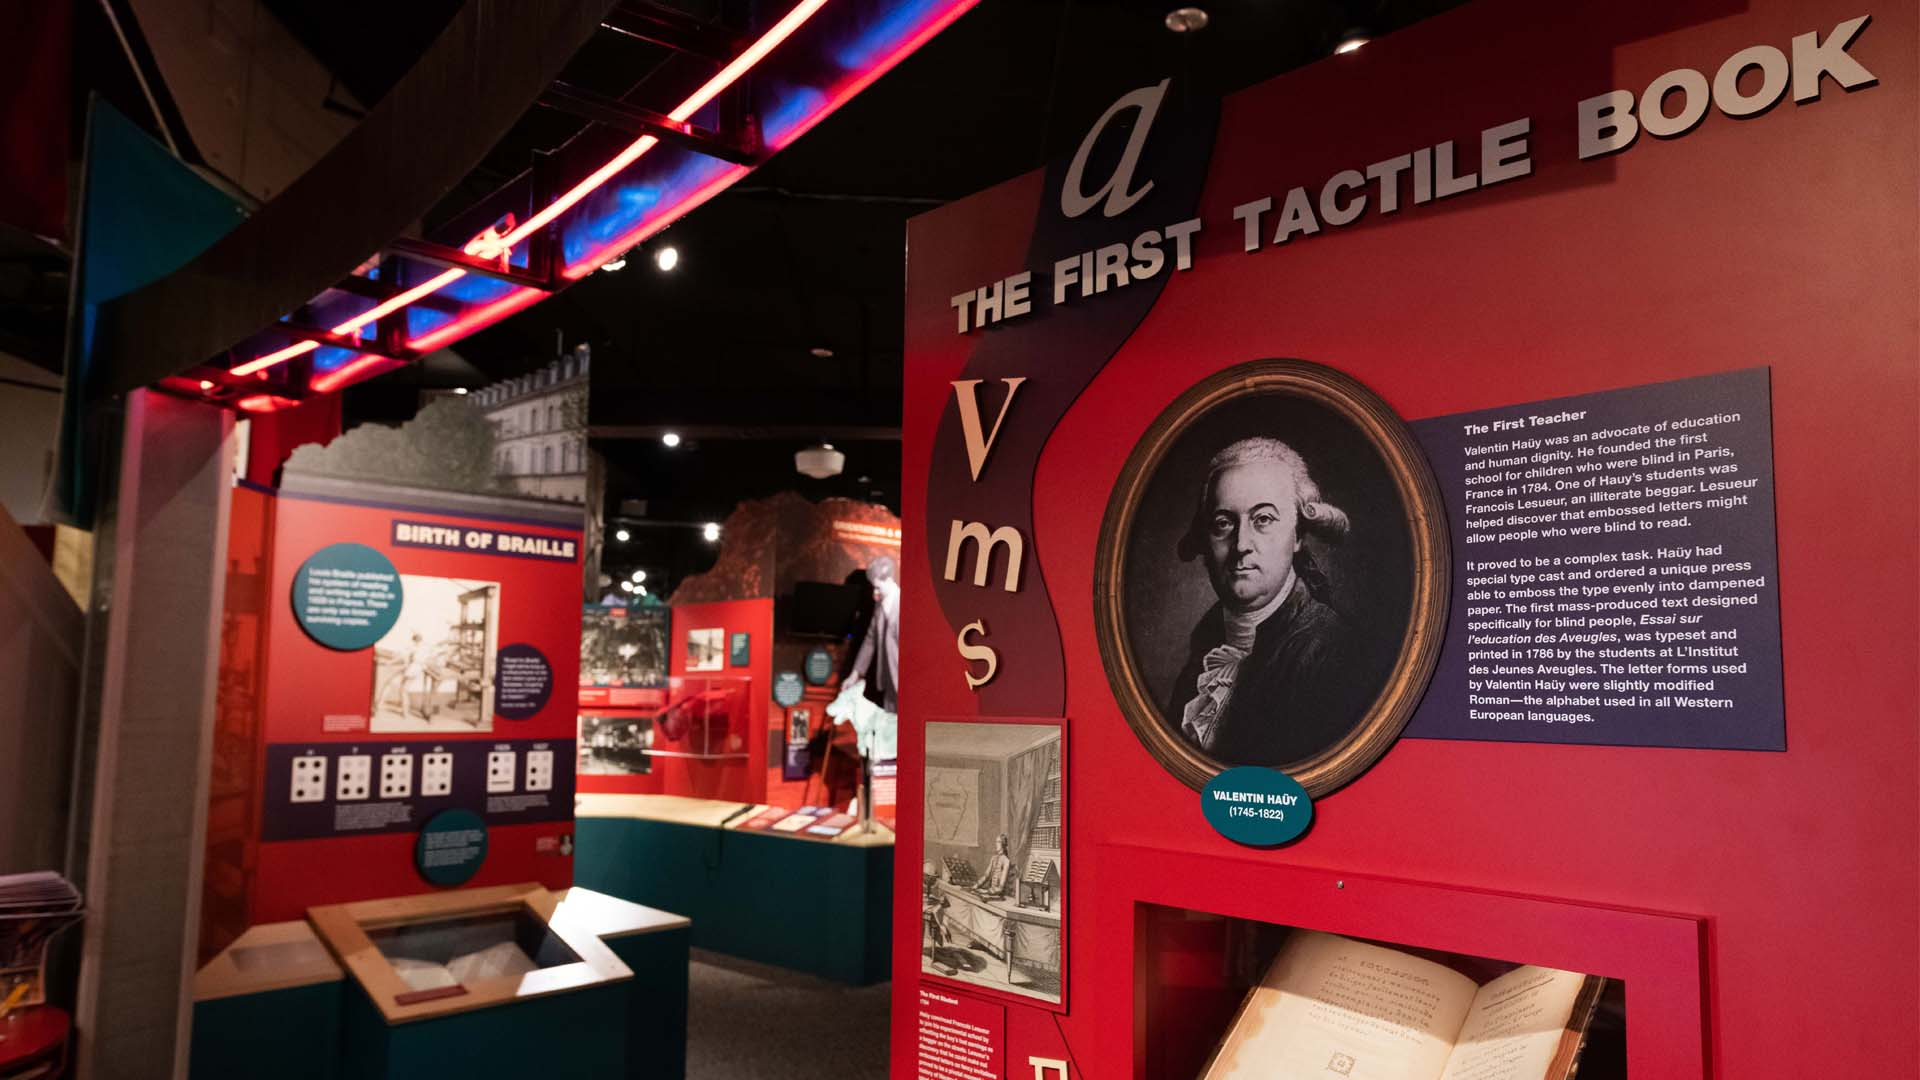 Angled view of museum exhibits, with a display case in the foreground holding a tactile book